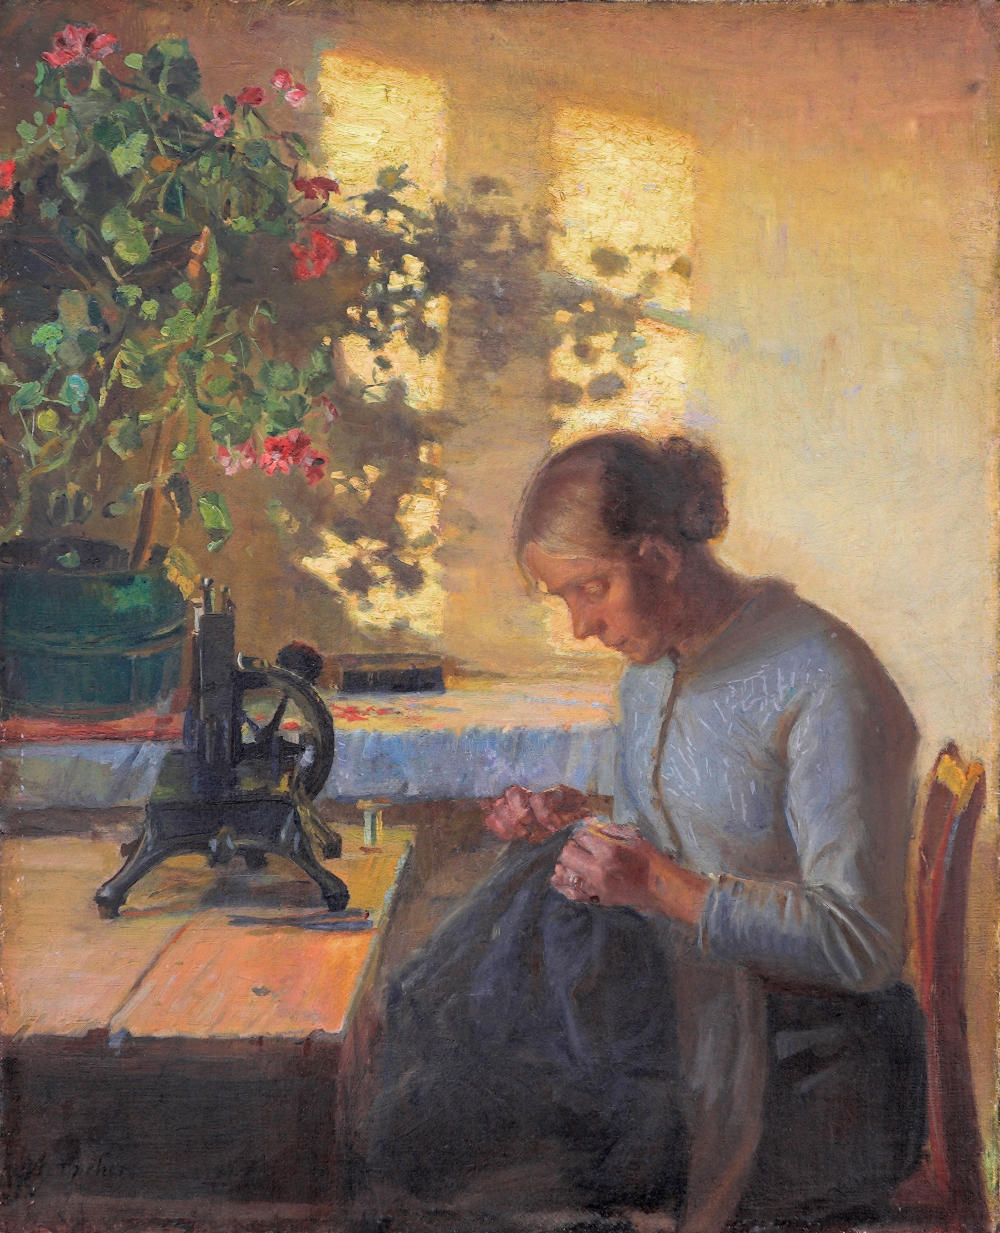 Sewing Fisherman's Wife by Anna Ancher, 1890